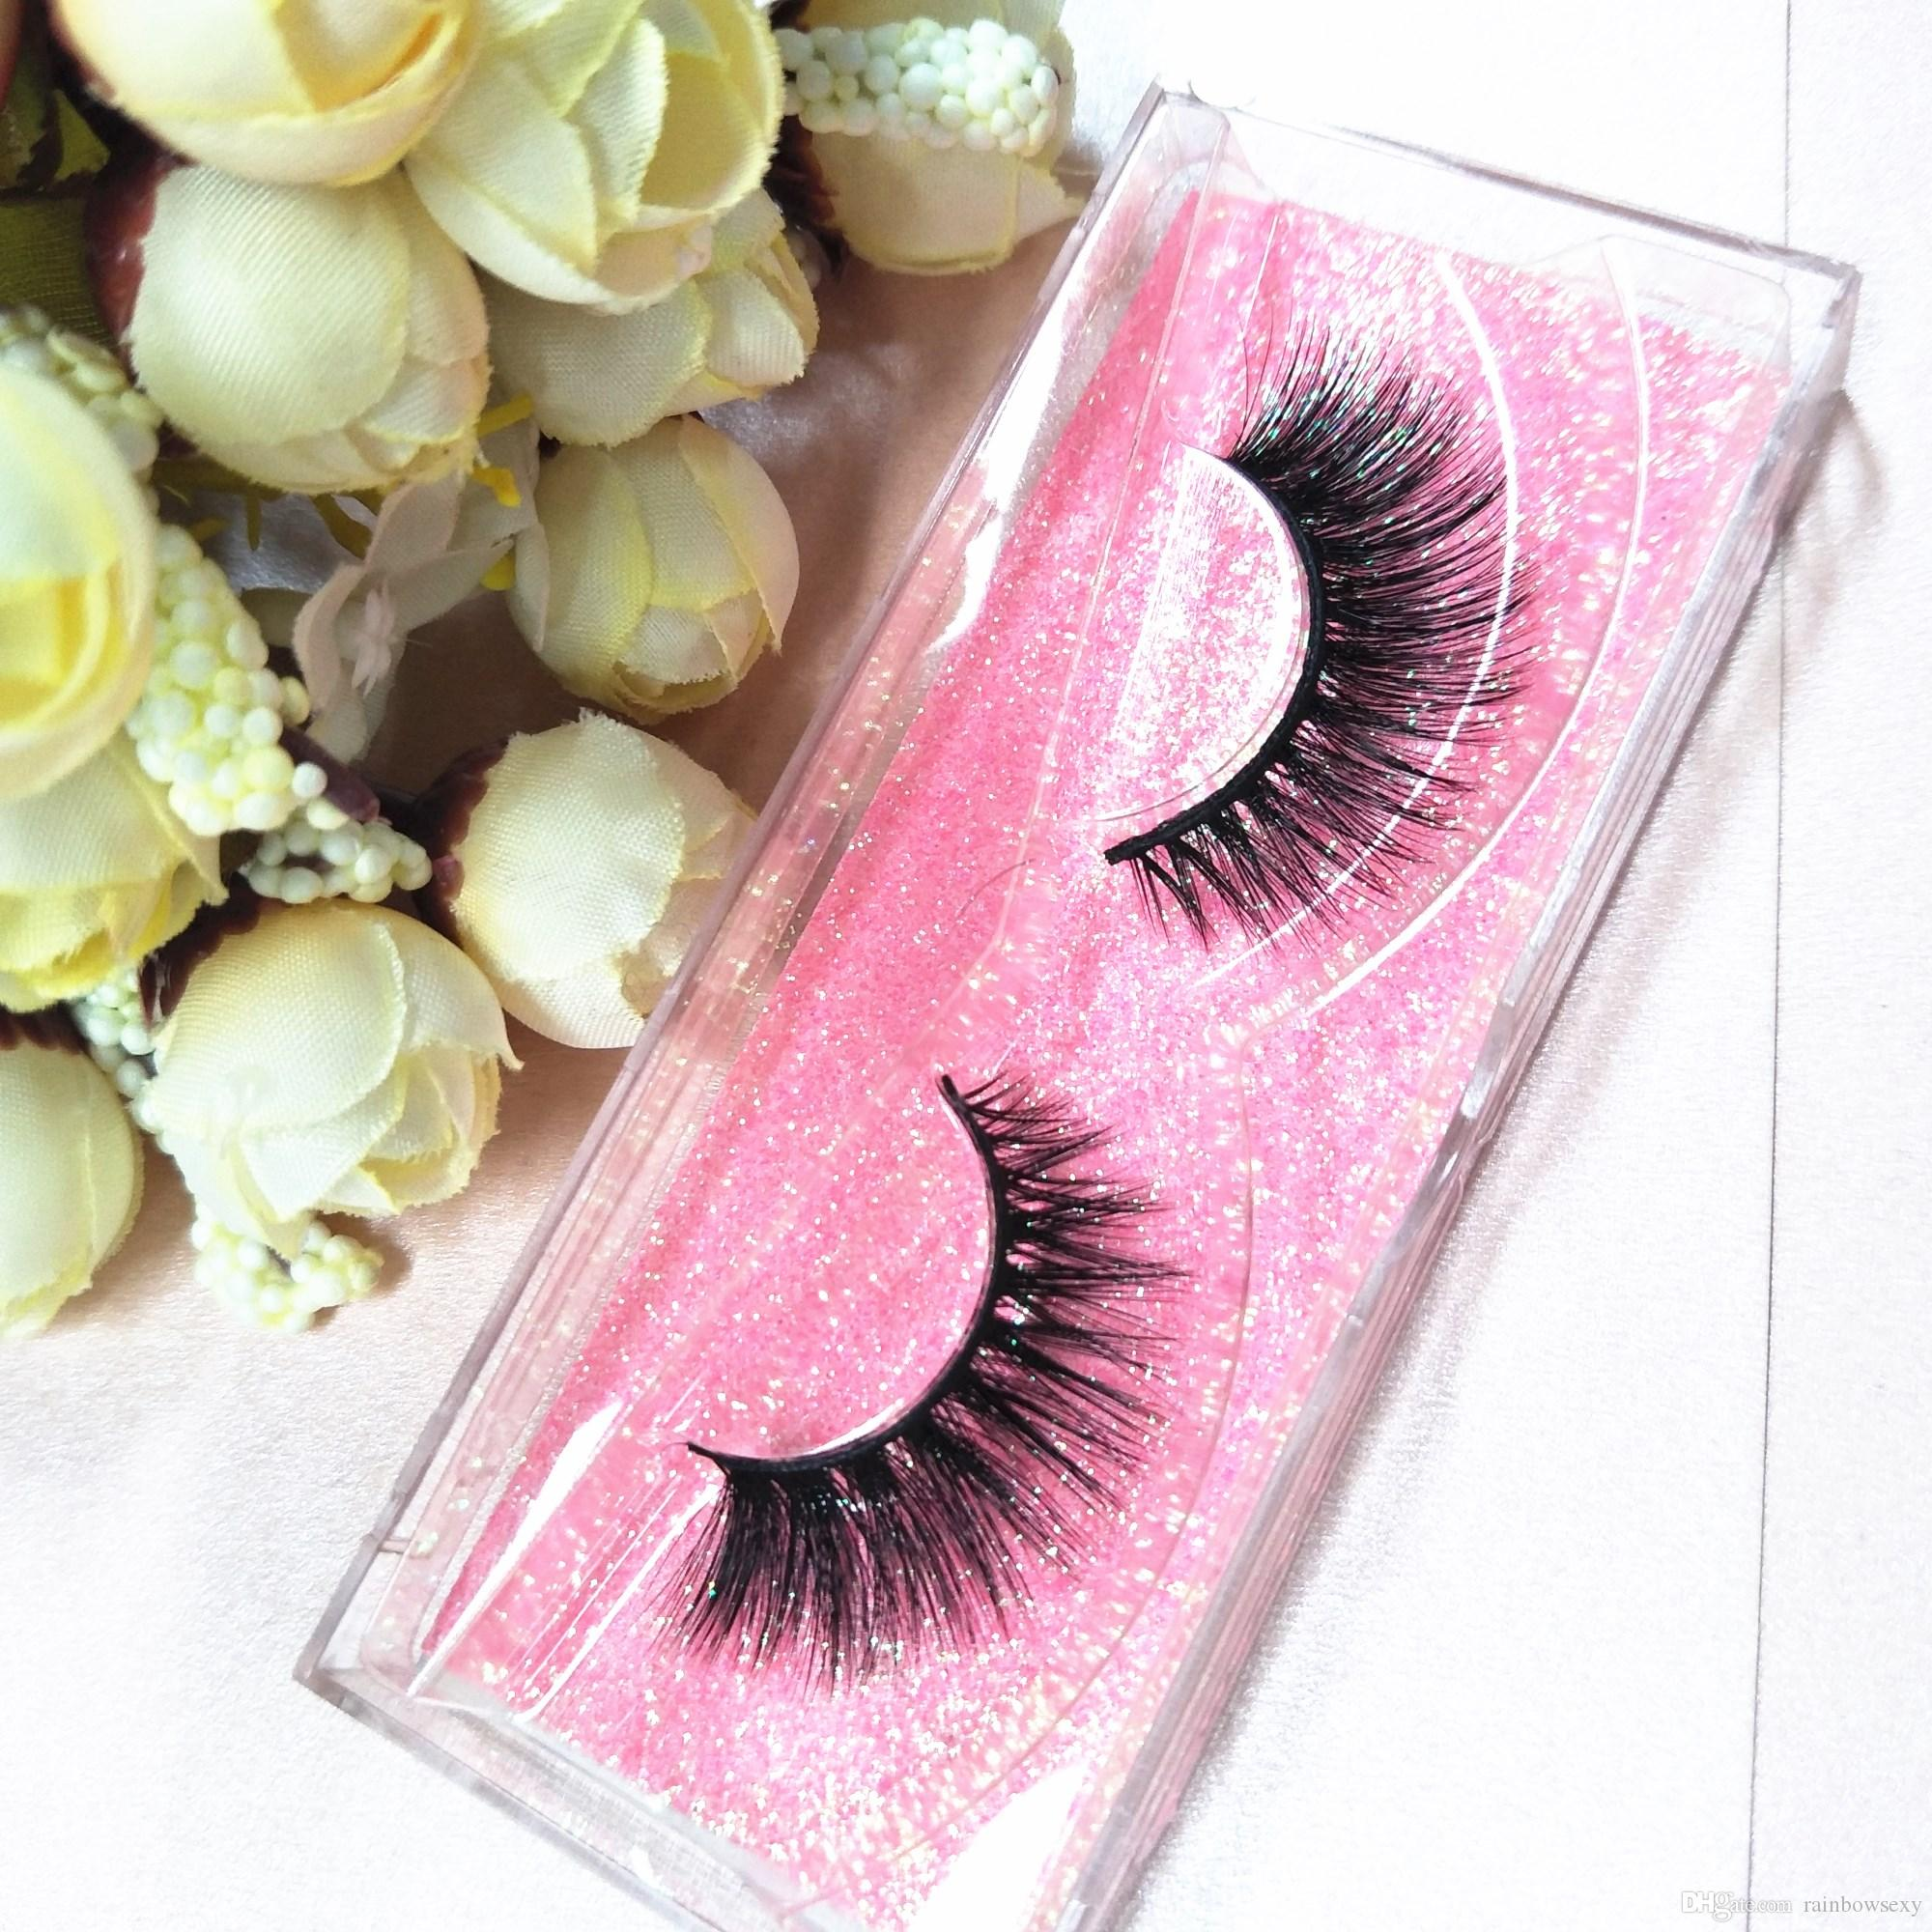 SEALASHES LASHES Premade Lashes 100% 3D Sexy Mink Lashes pack Customize boxes Handmade Top Real Mink Eyelashes Extension